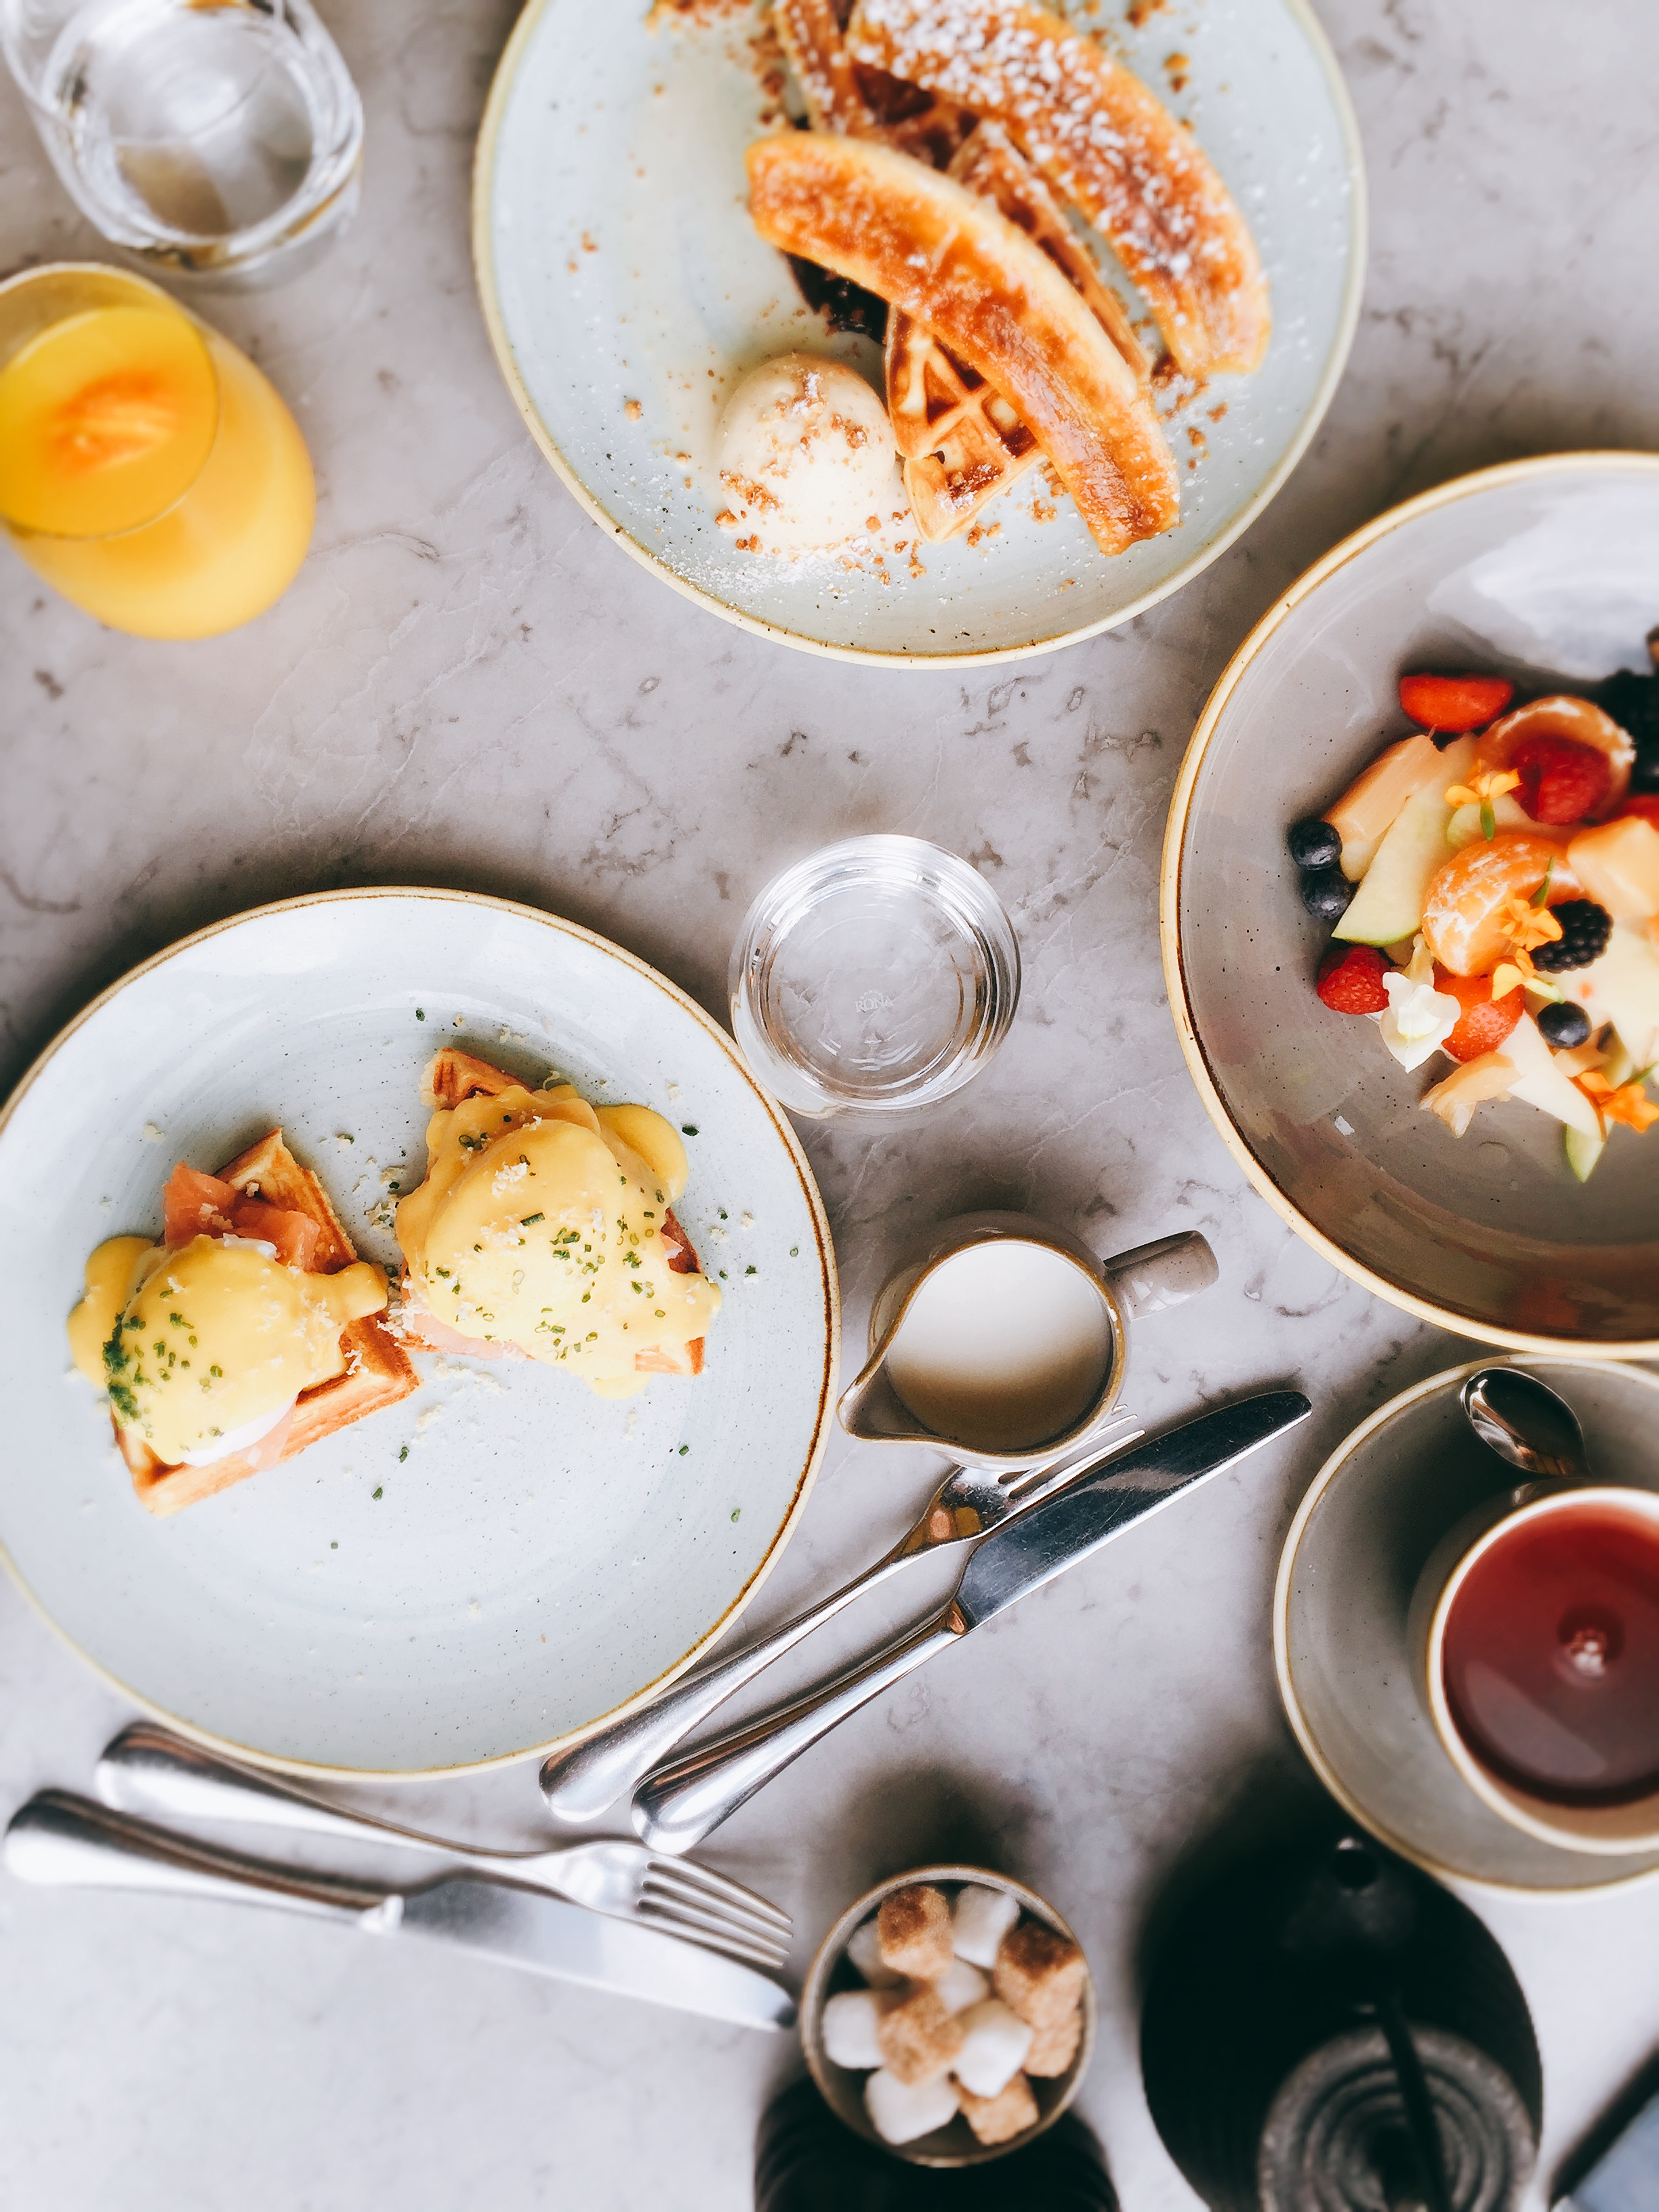 Brunch at Duck and Waffle - restaurant review